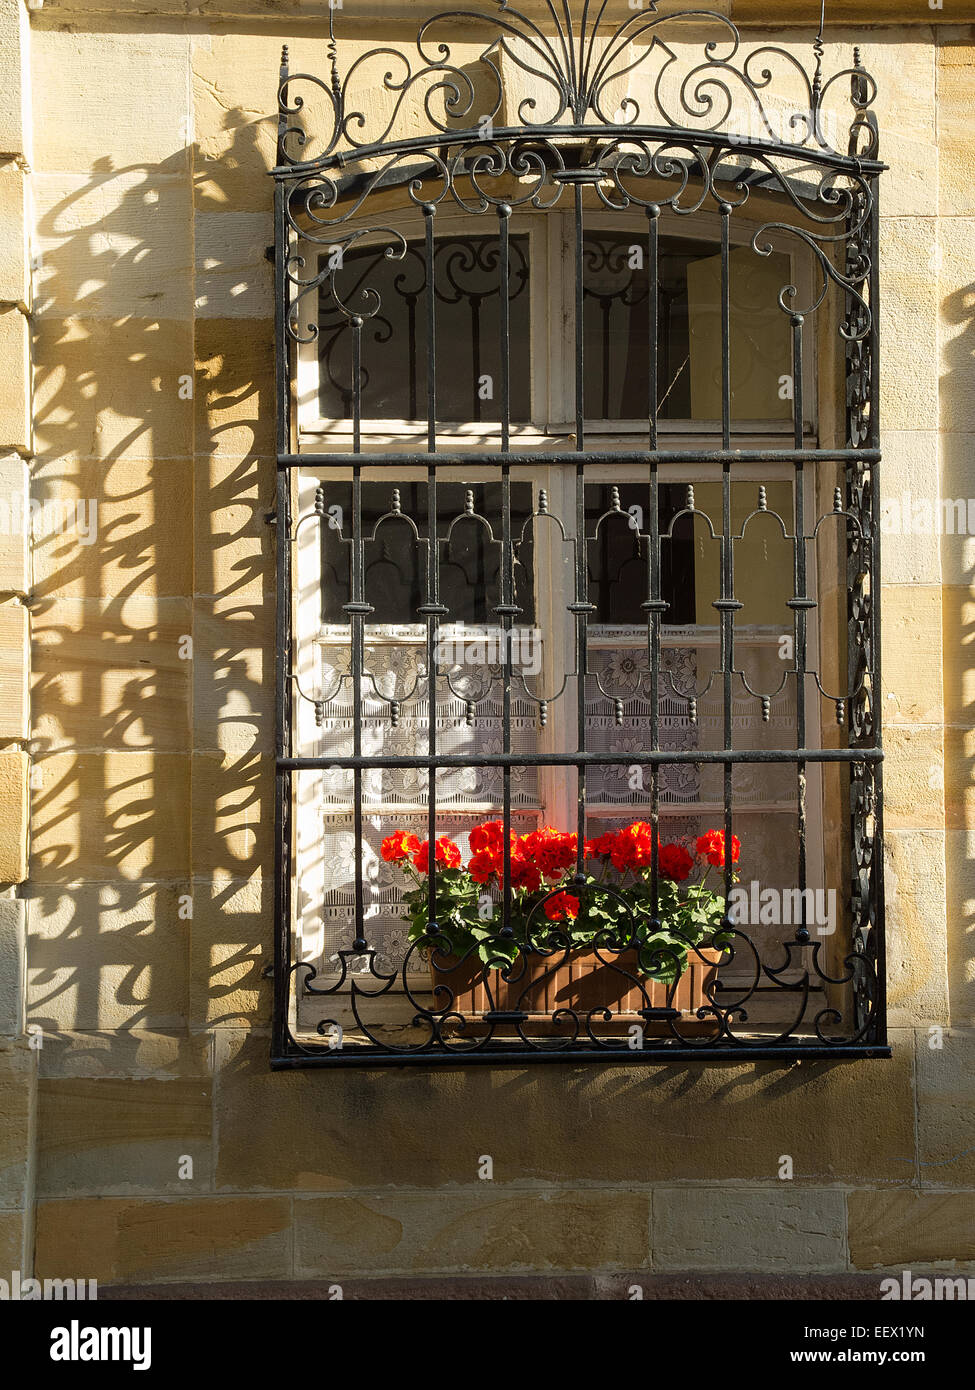 window with geraniums Mulhouse France - Stock Image